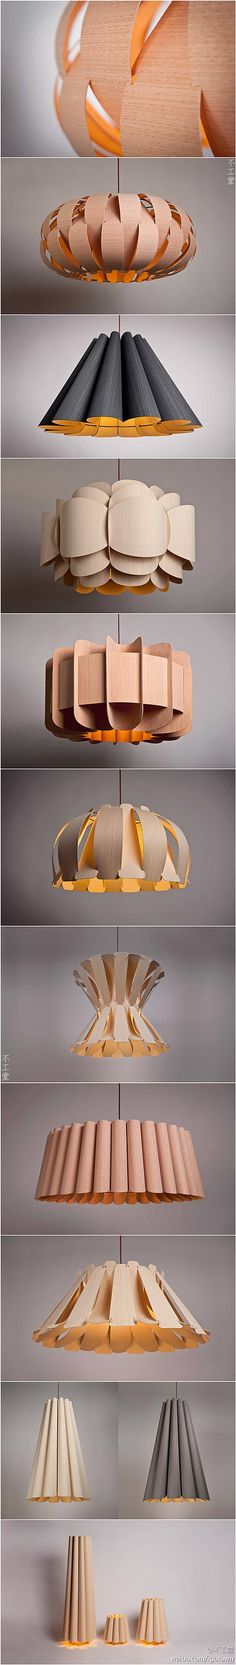 Beautiful cut and folded paper (mostly) pendant lamps.